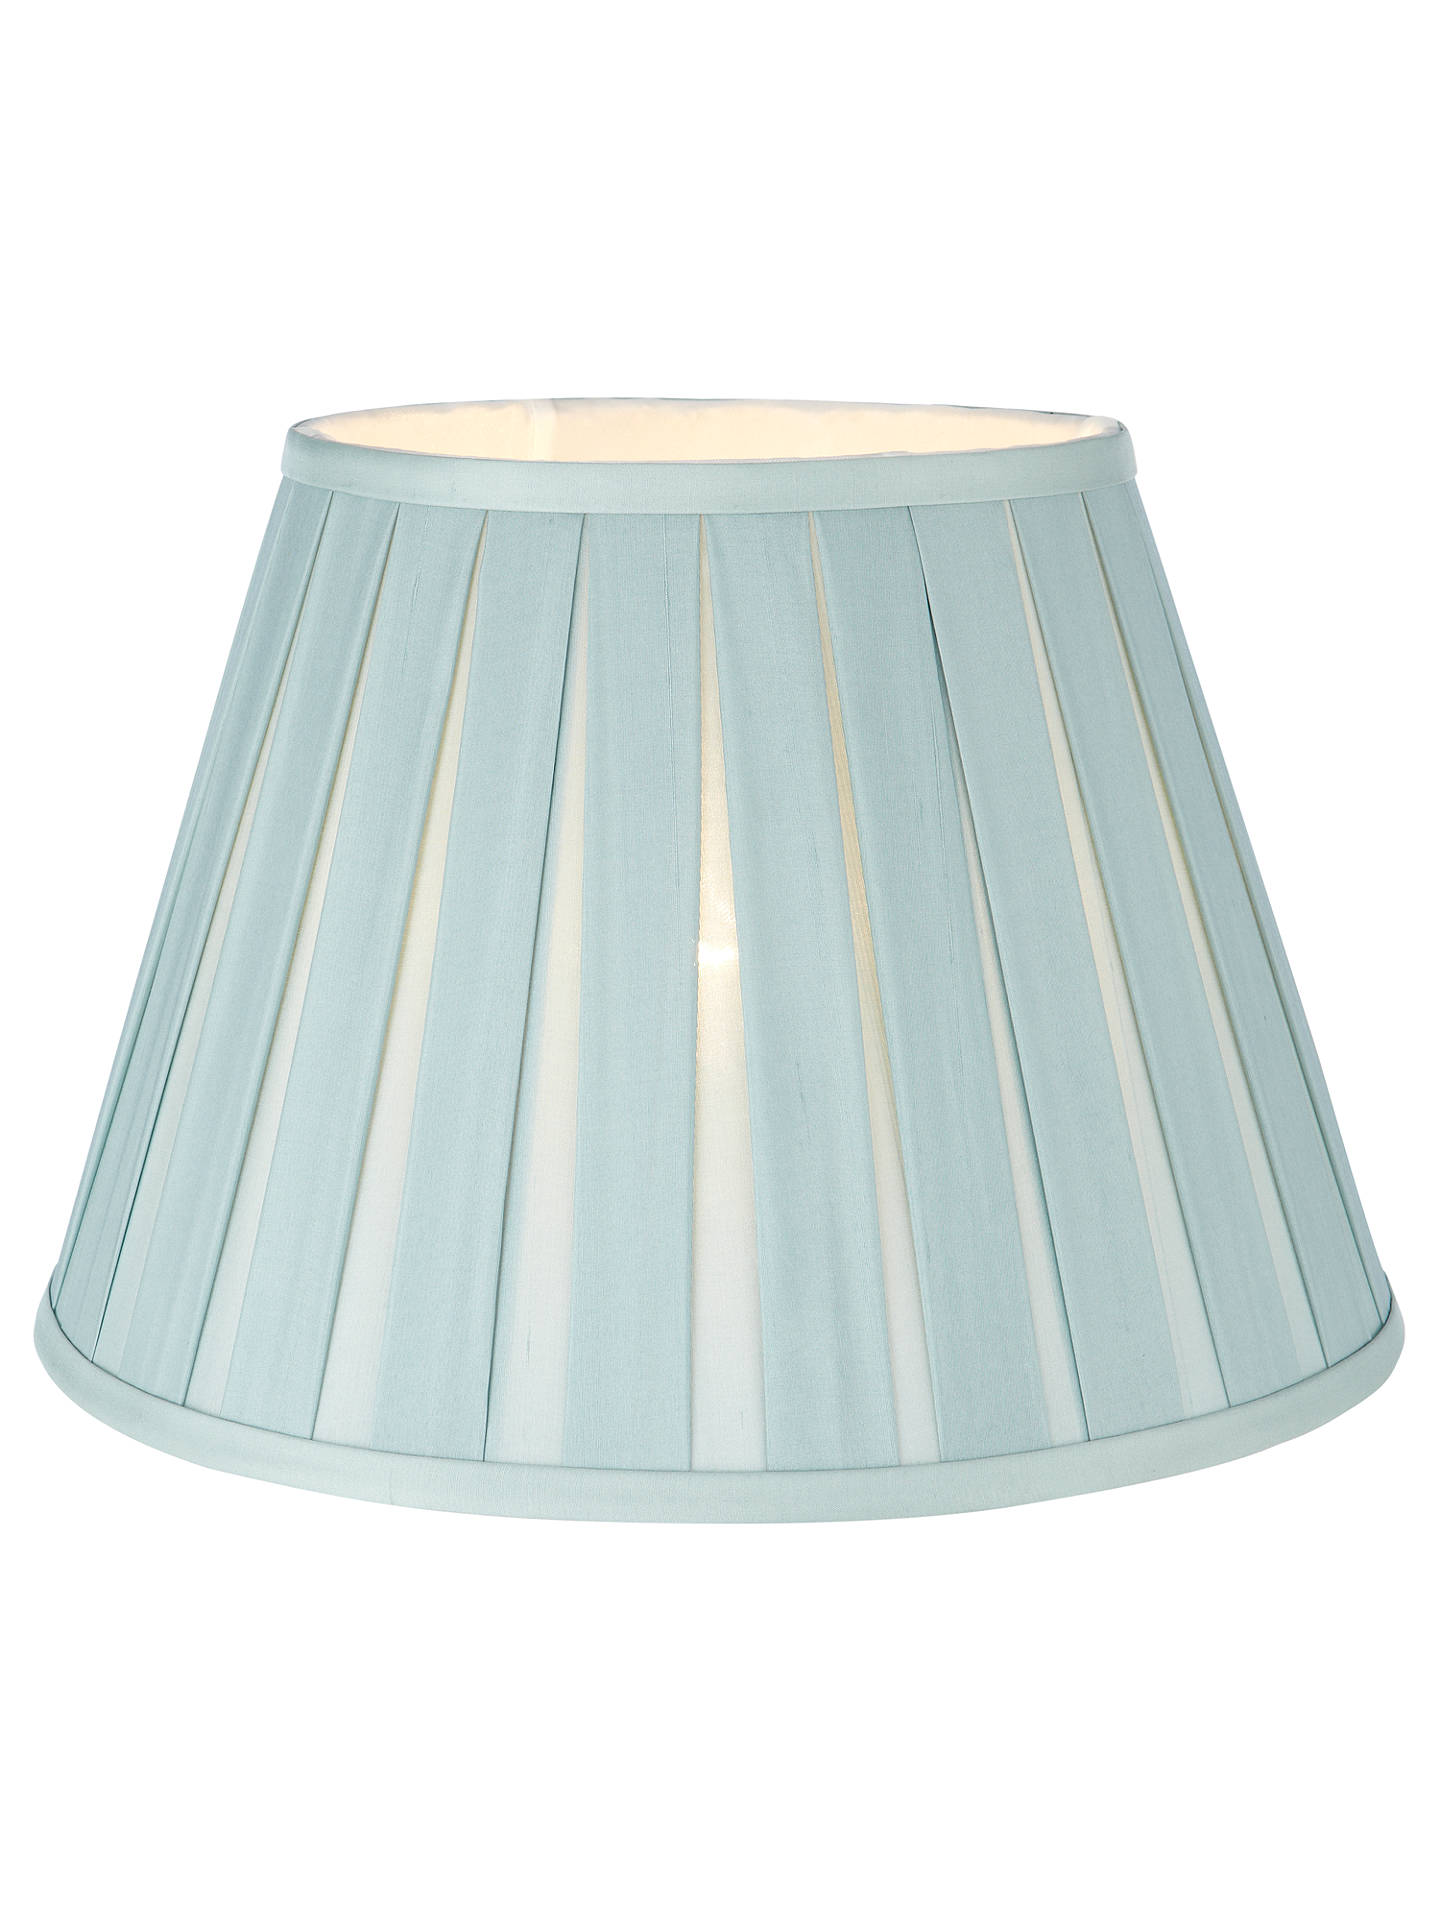 Buy John Lewis & Partners Oratorio Silk Tapered Lampshade, Duck Egg, Dia. 25cm Online at johnlewis.com